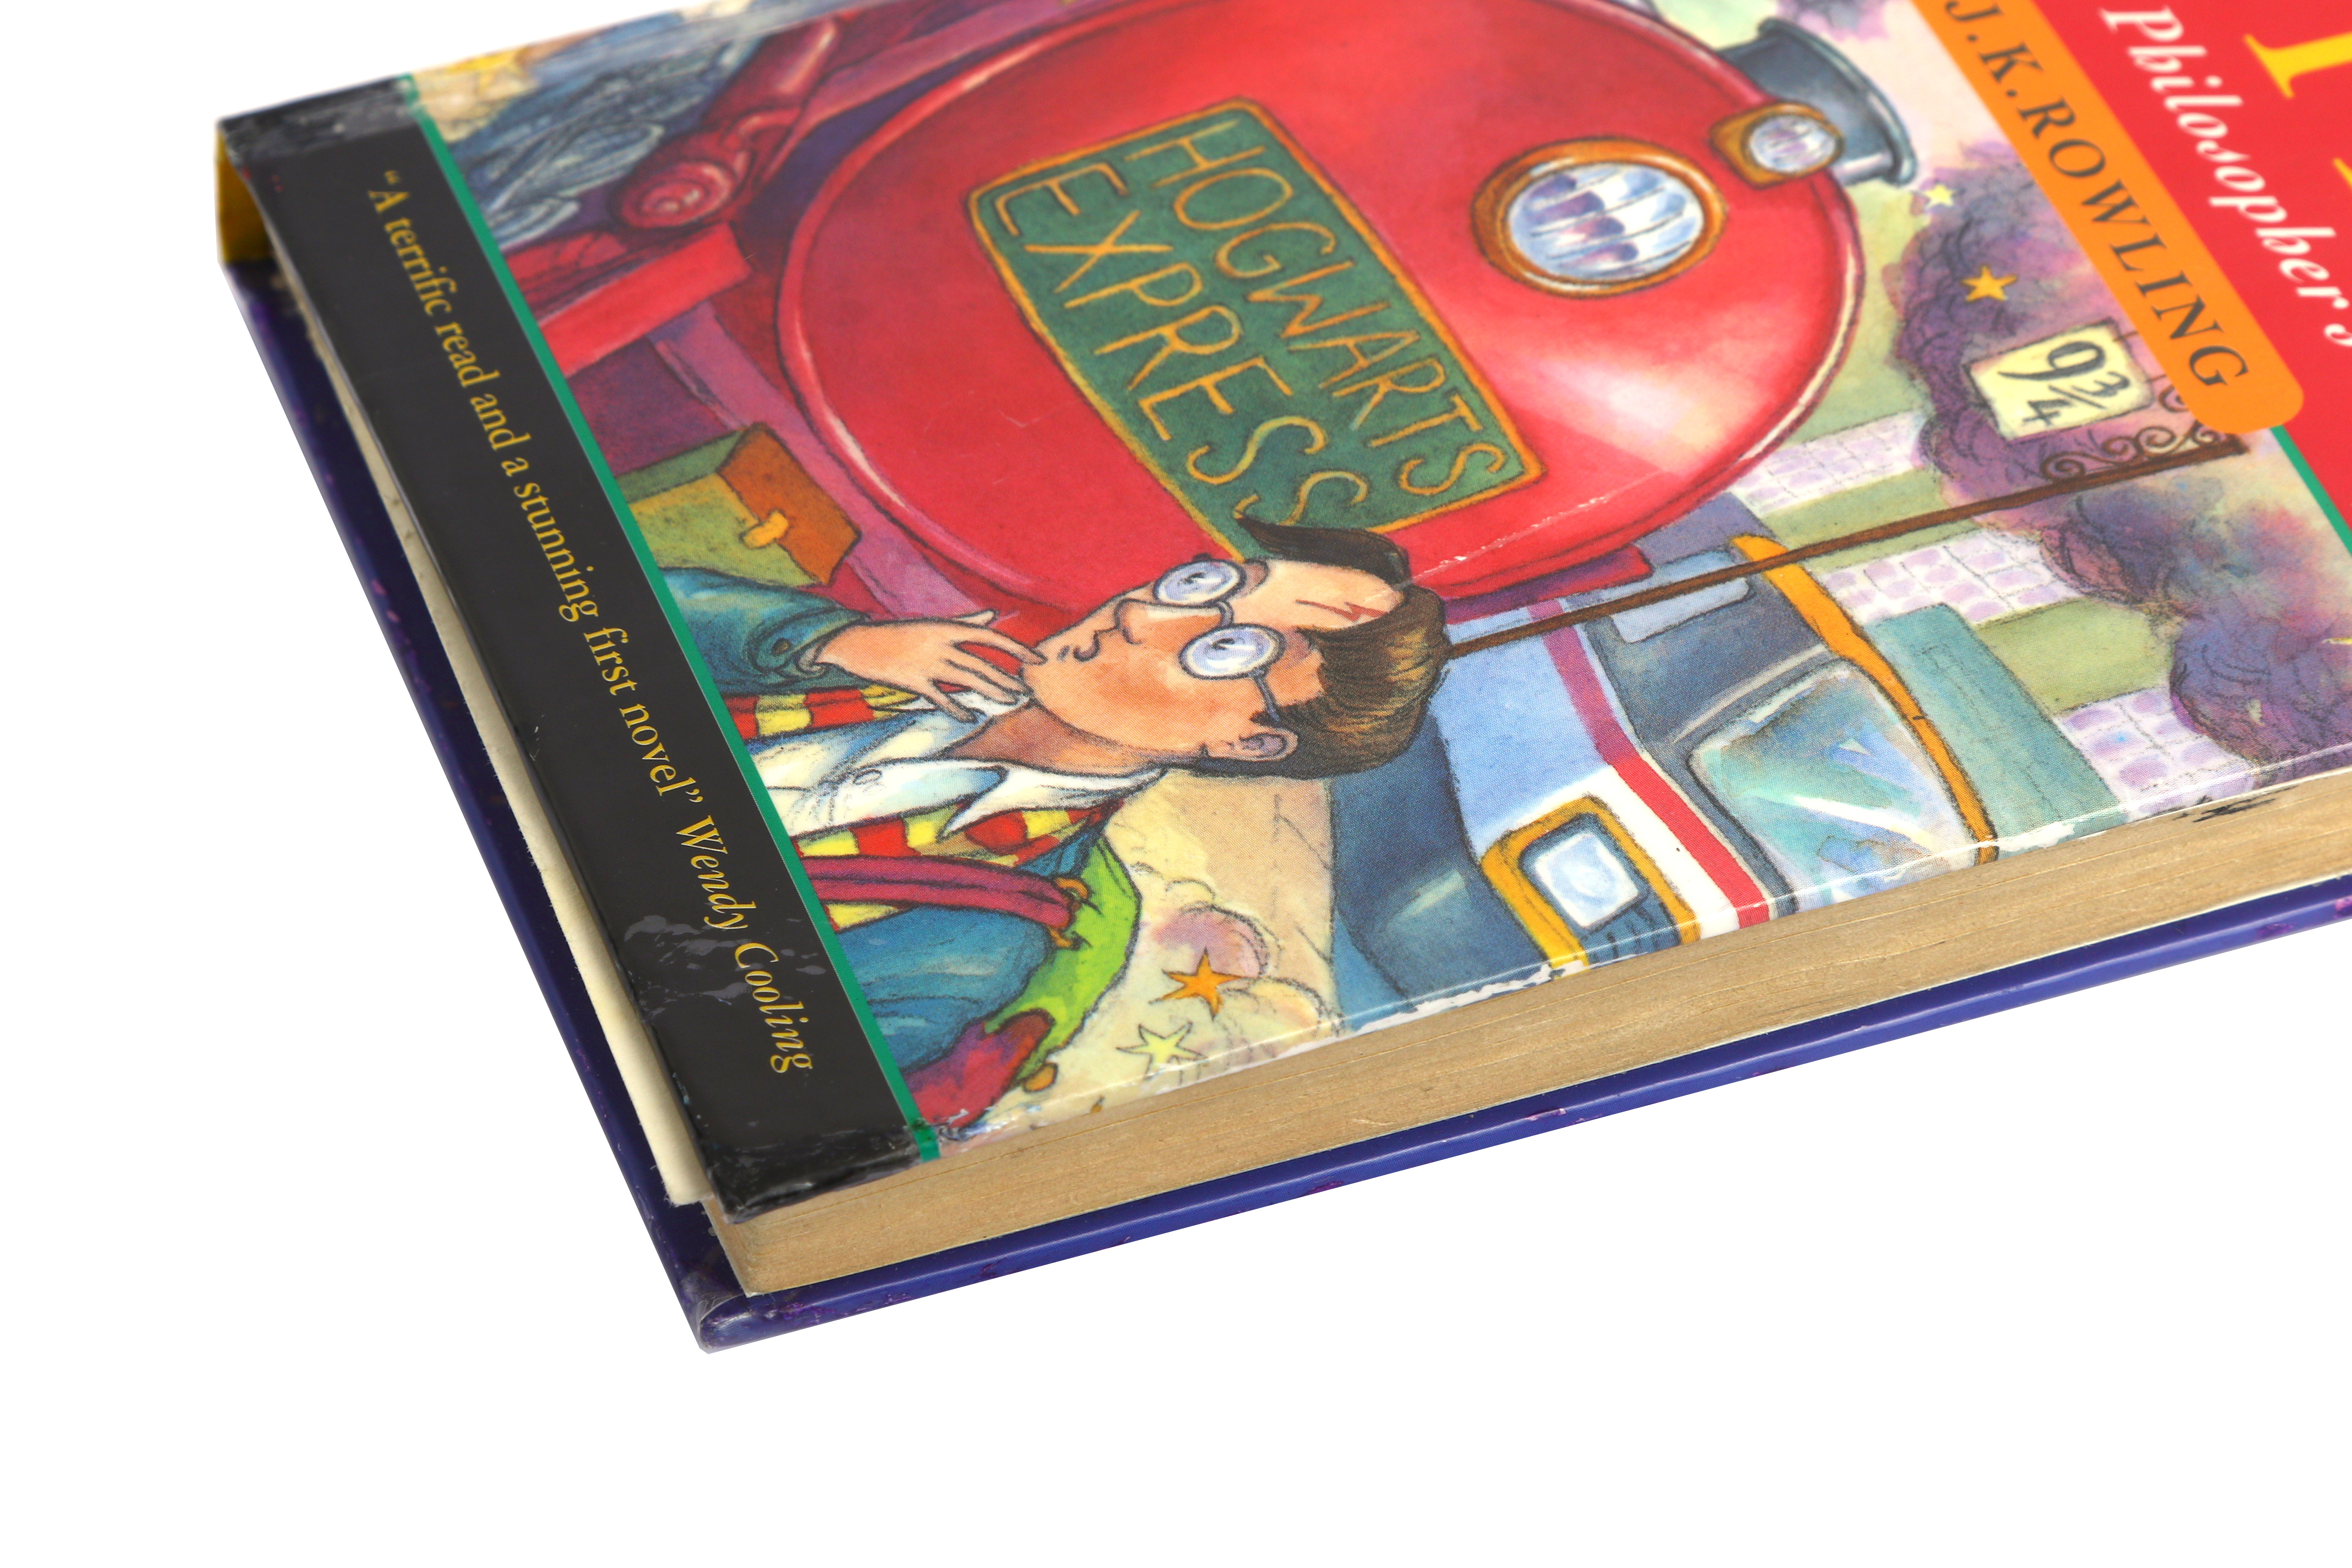 First-edition Harry Potter sells for £27,500 - Country Life